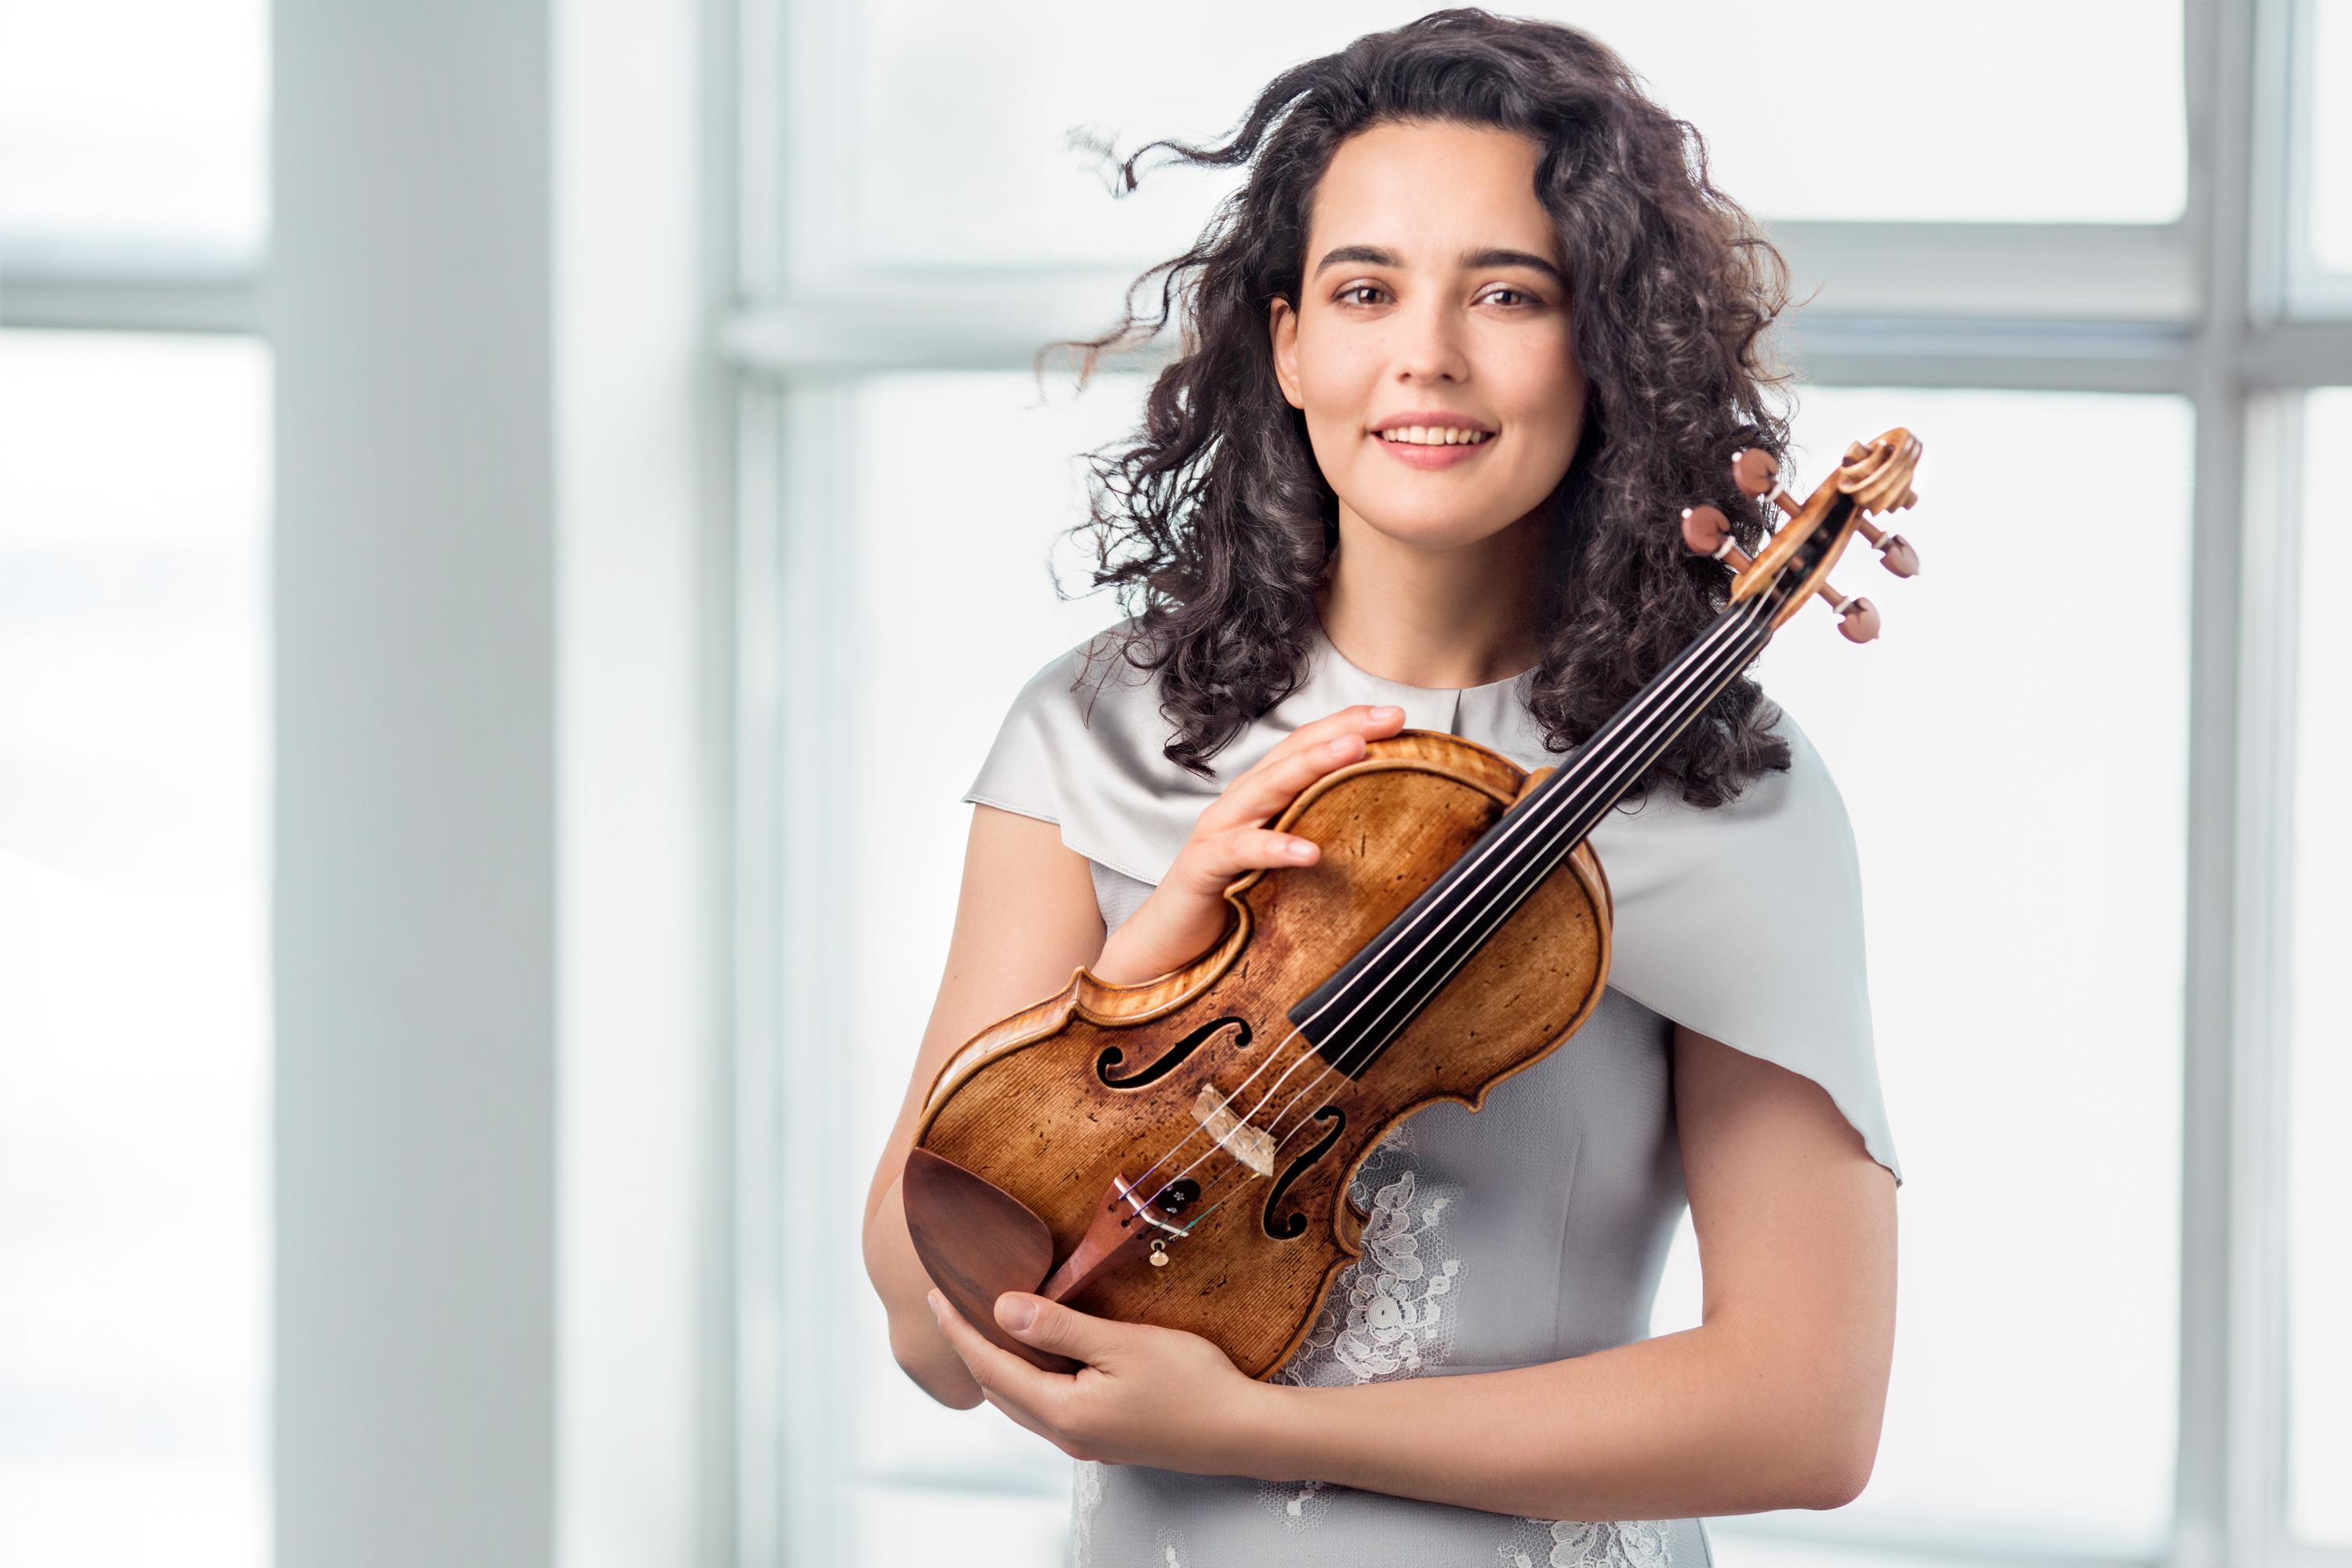 Alena Baeva performs with Slovak Philharmonic and returns to La Folle Journée Festival 1